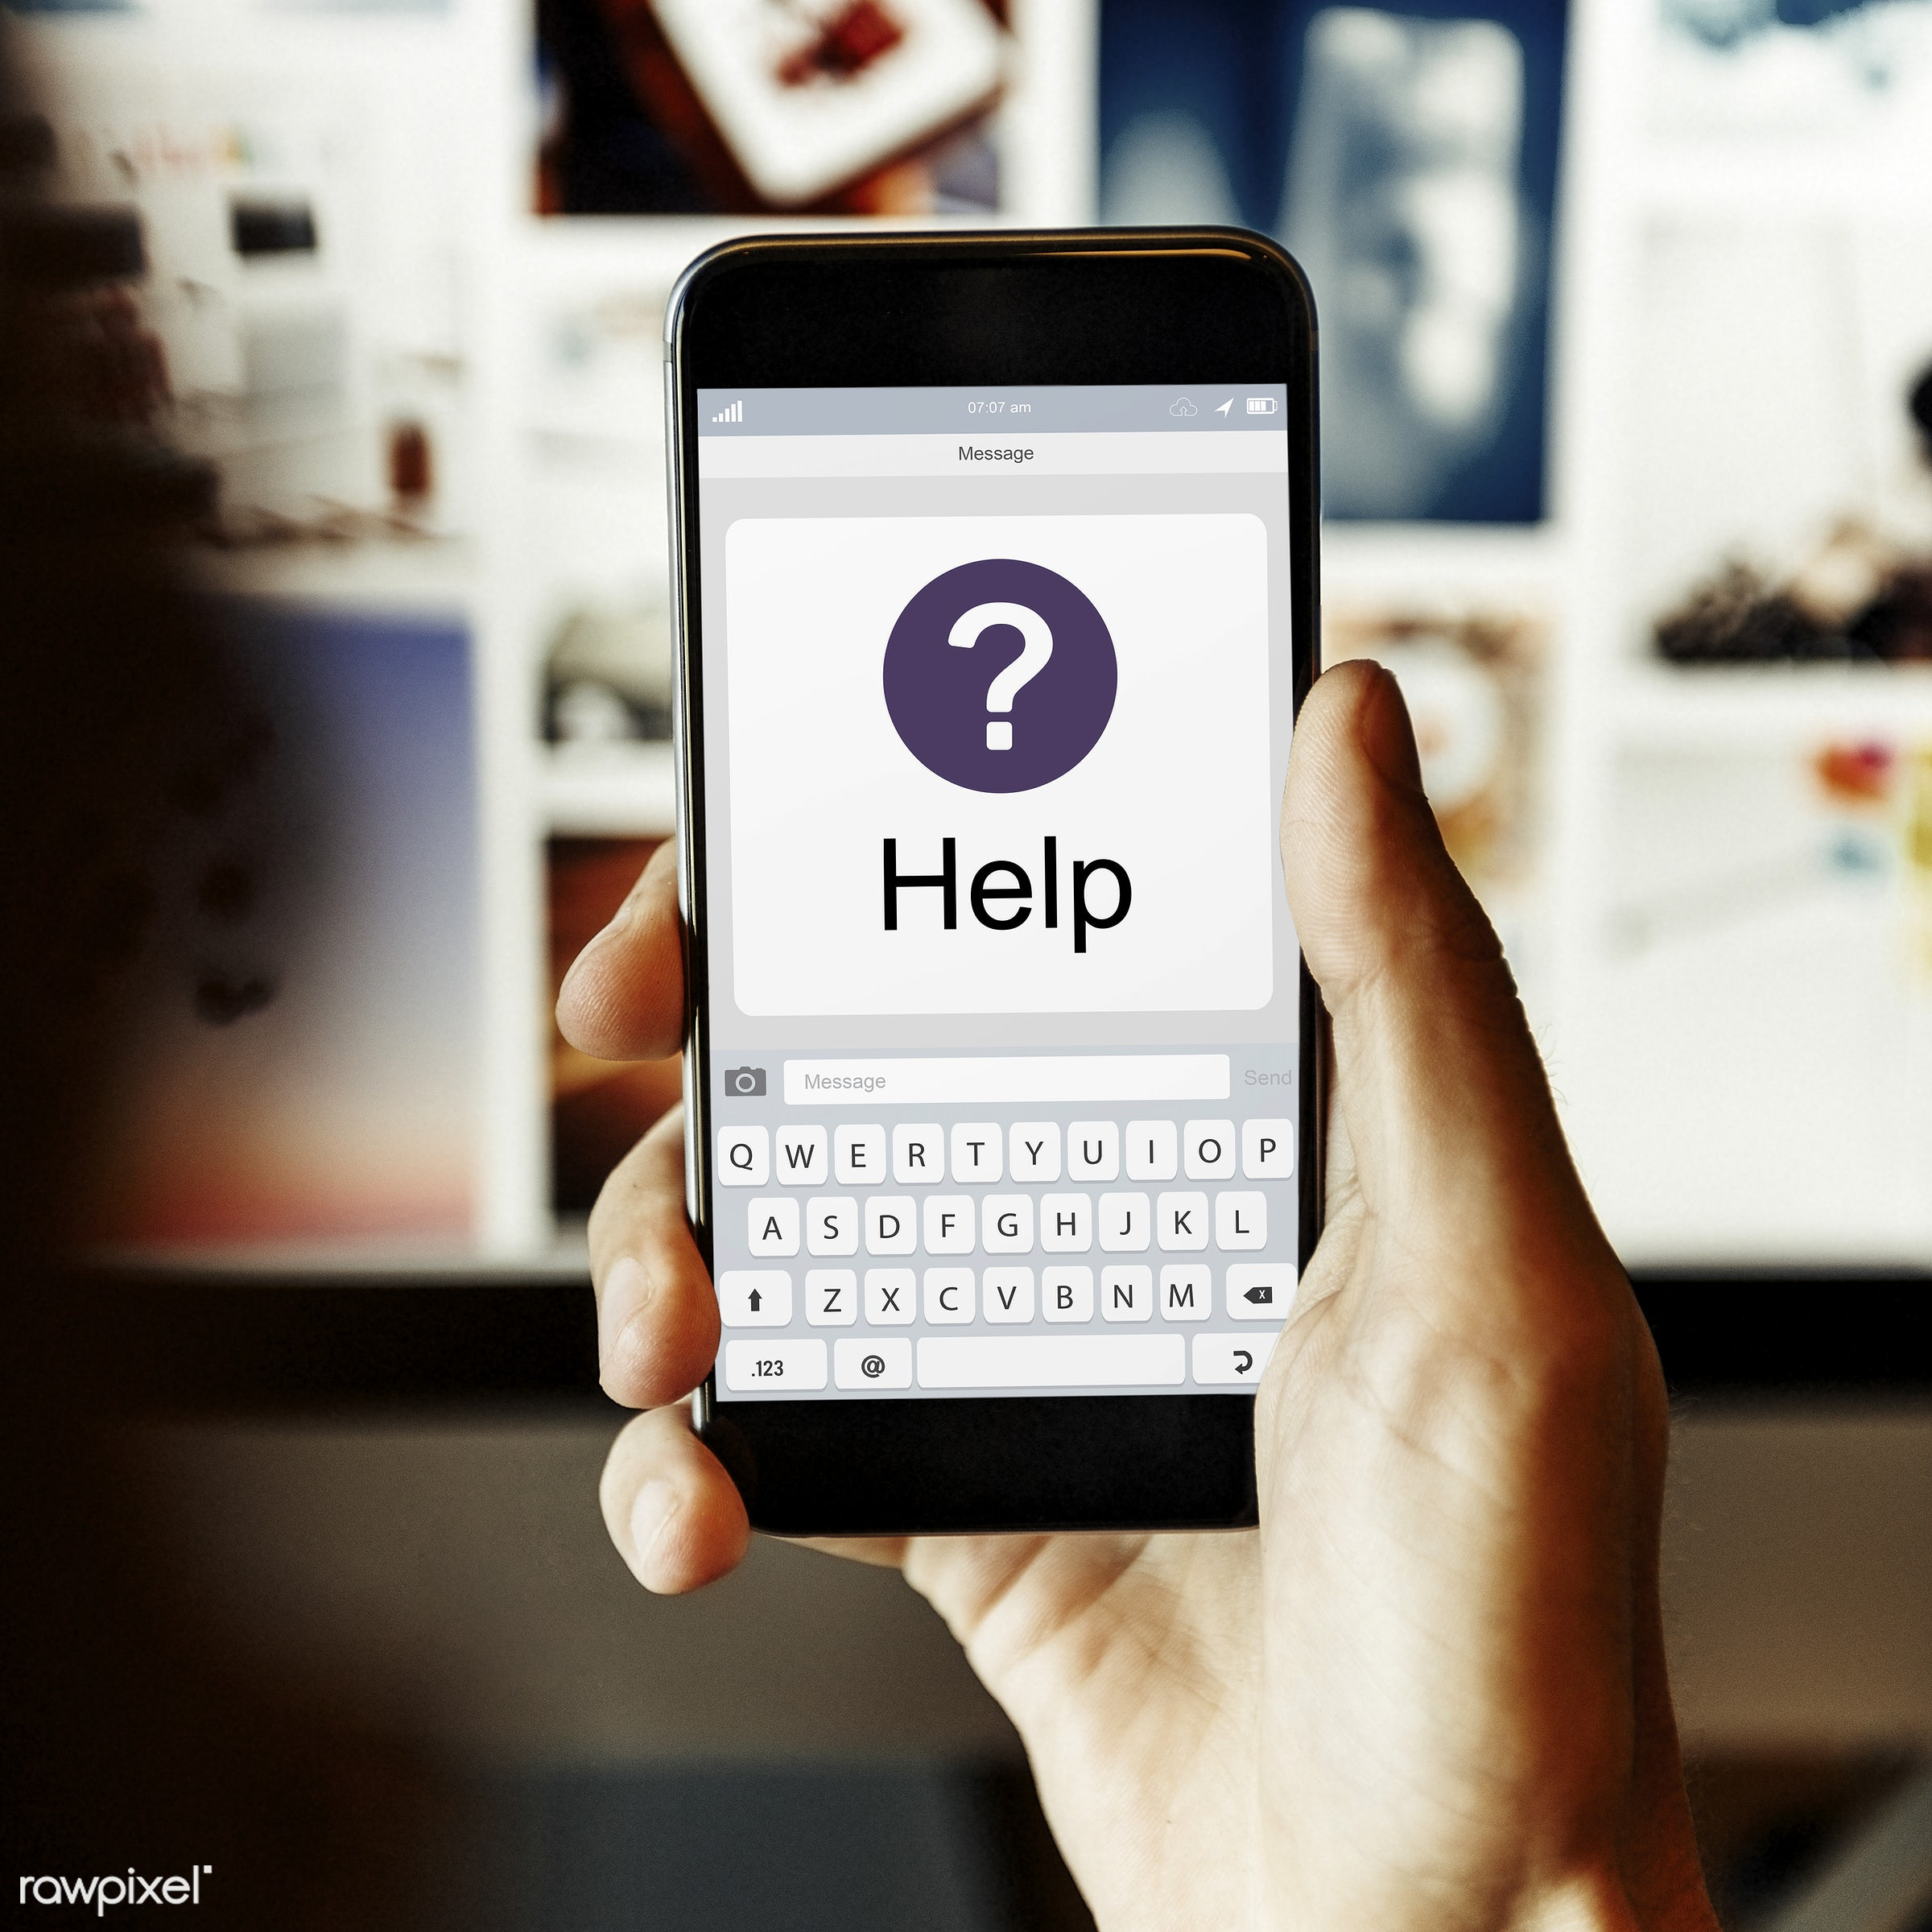 Online help center - answer, ask us, assistance, blog, browsing, call, center, communication, connect, contact, digital...